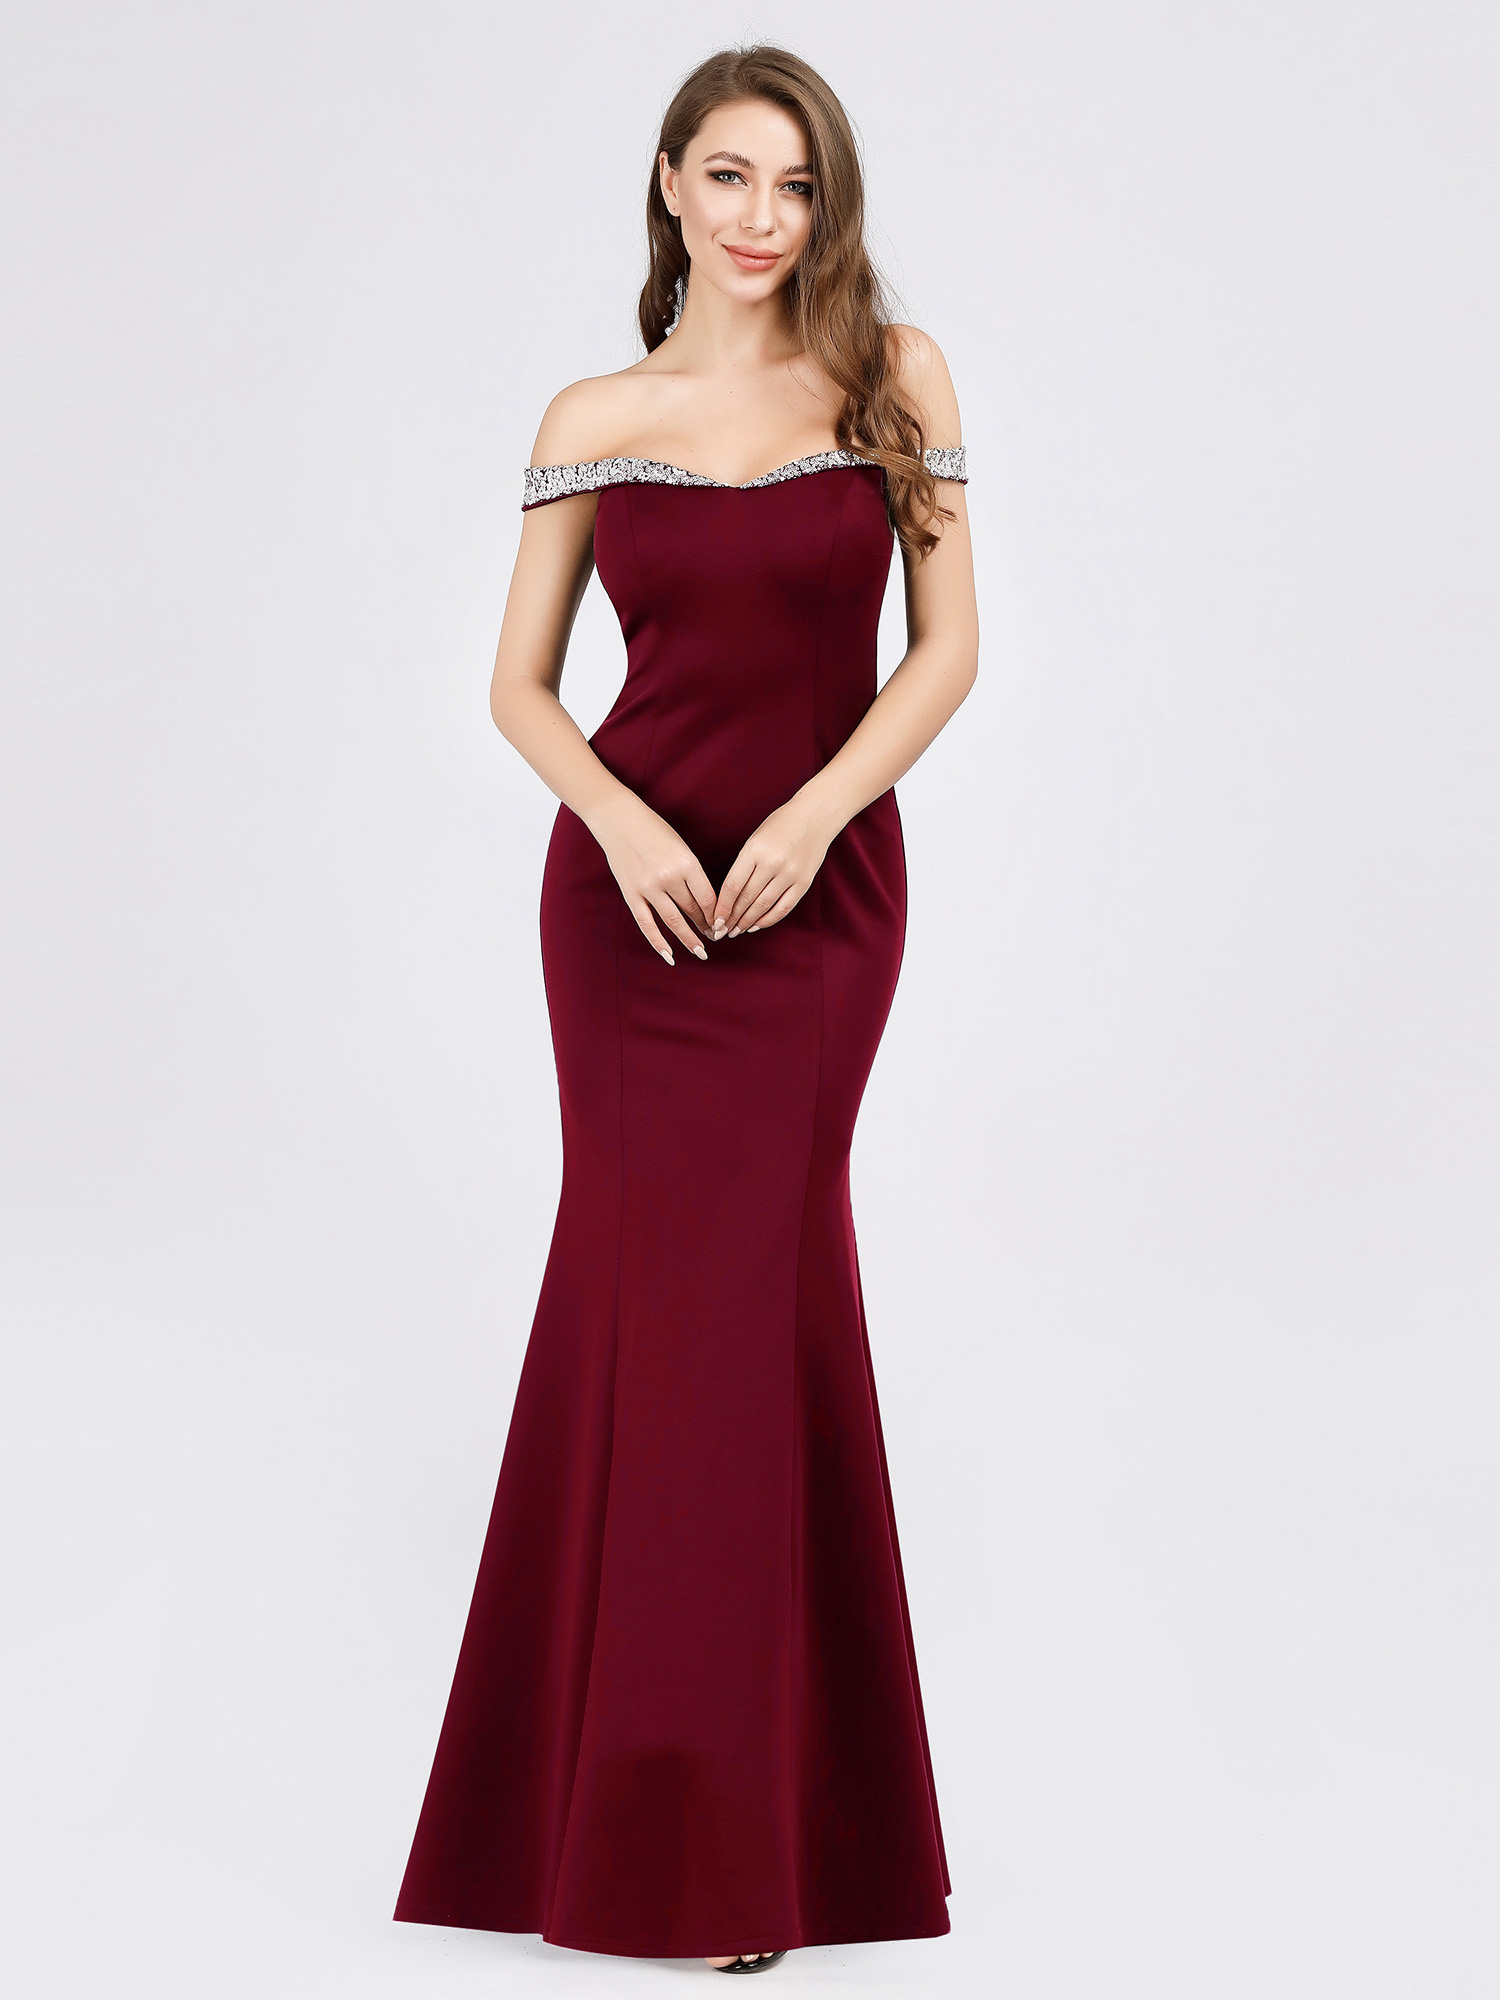 Ever-Pretty-US-Off-Shoulder-Sequins-Long-Evening-Dress-Mermaid-Wedding-Gown-7941 thumbnail 9